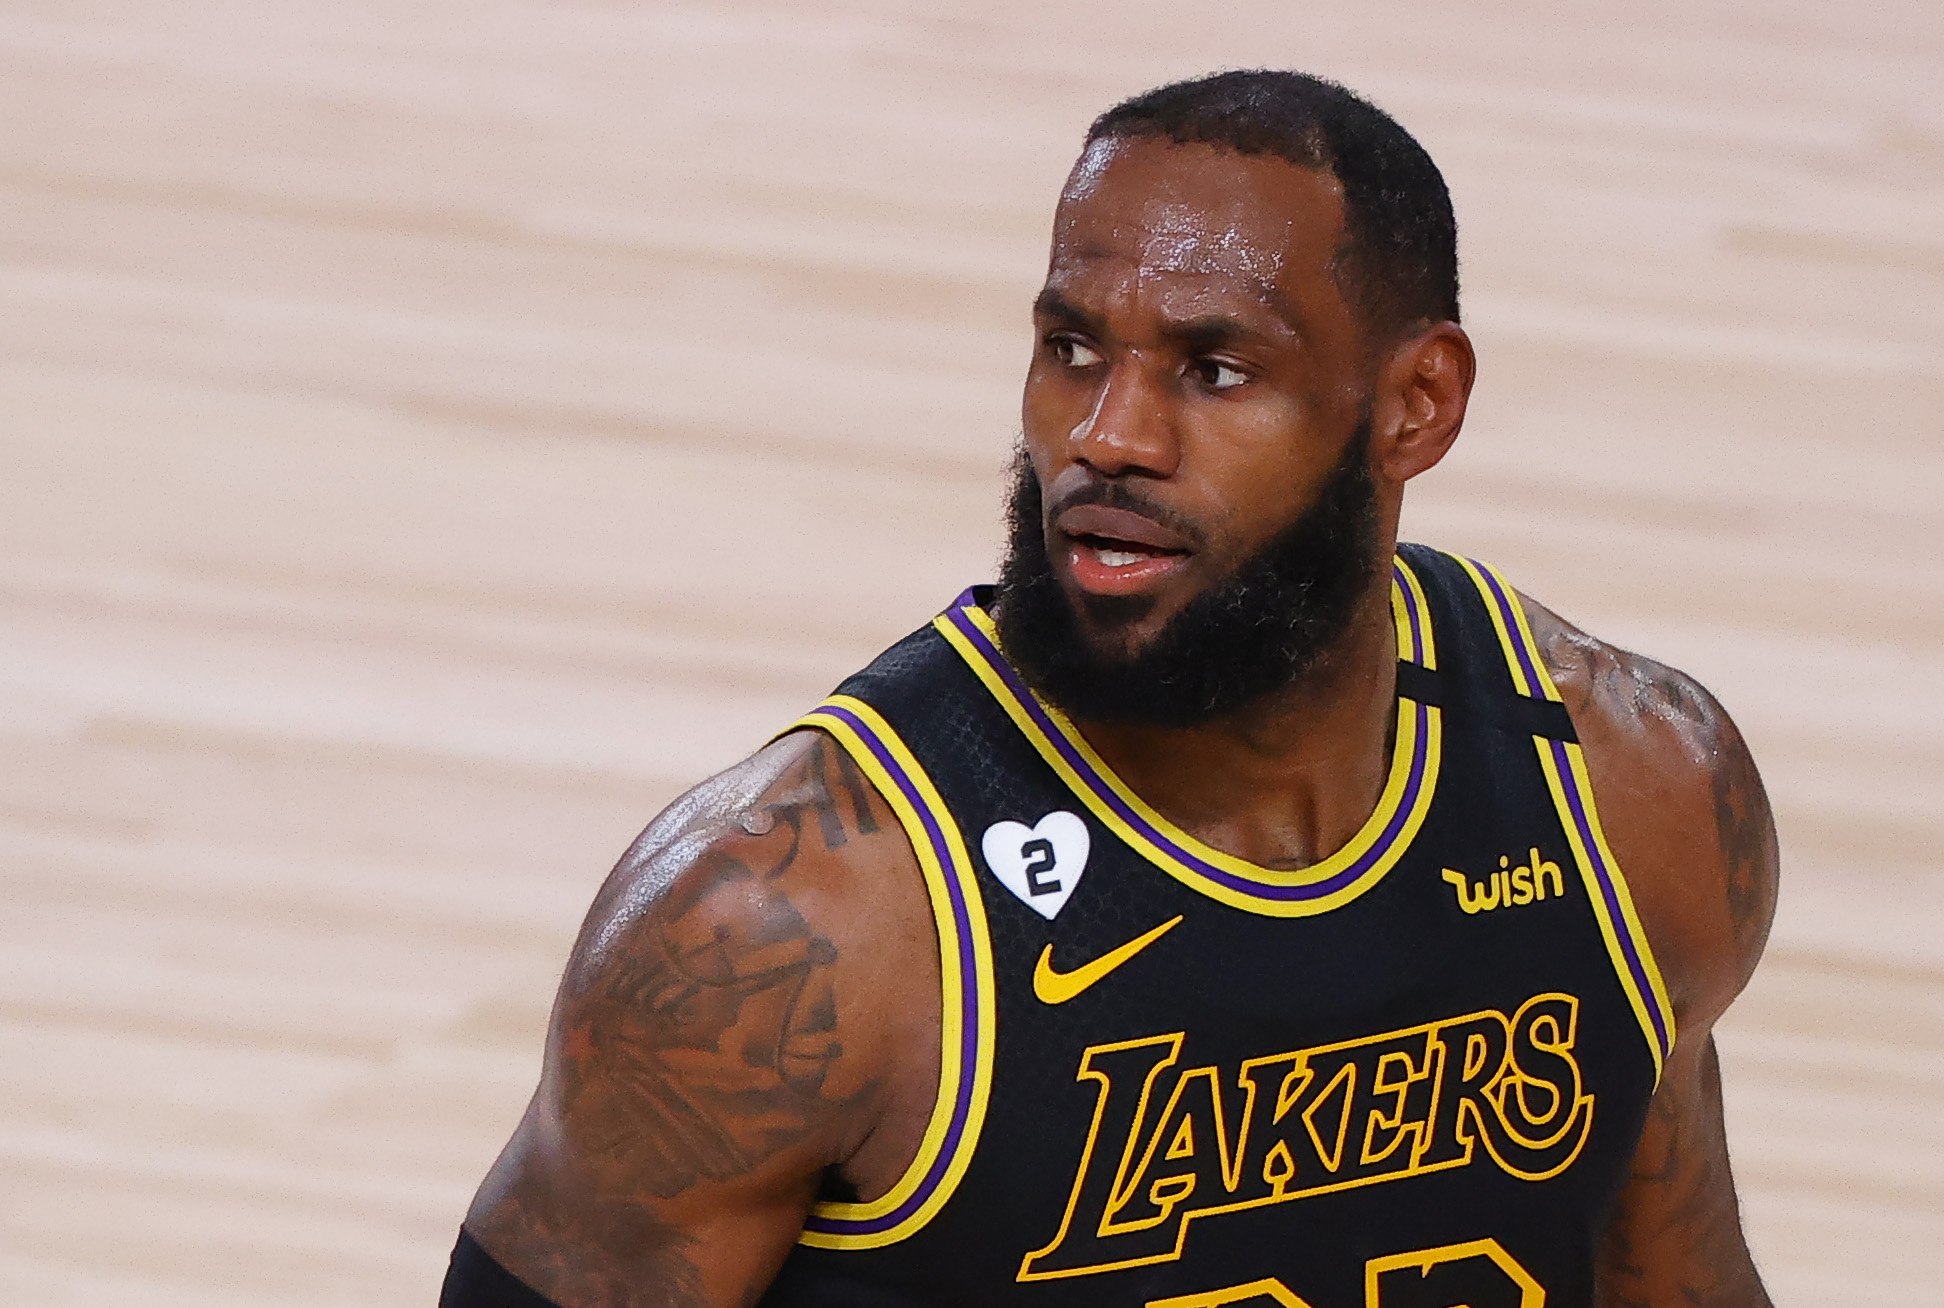 LeBron James of the Los Angeles Lakers reacts against the Portland Trail Blazers during the third quarter in Game Four of the Western Conference First Round during the 2020 NBA Playoffs at AdventHealth Arena at ESPN Wide World Of Sports Complex on Aug. 24, 2020 in Lake Buena Vista, Florida. (Kevin C. Cox/Getty Images)